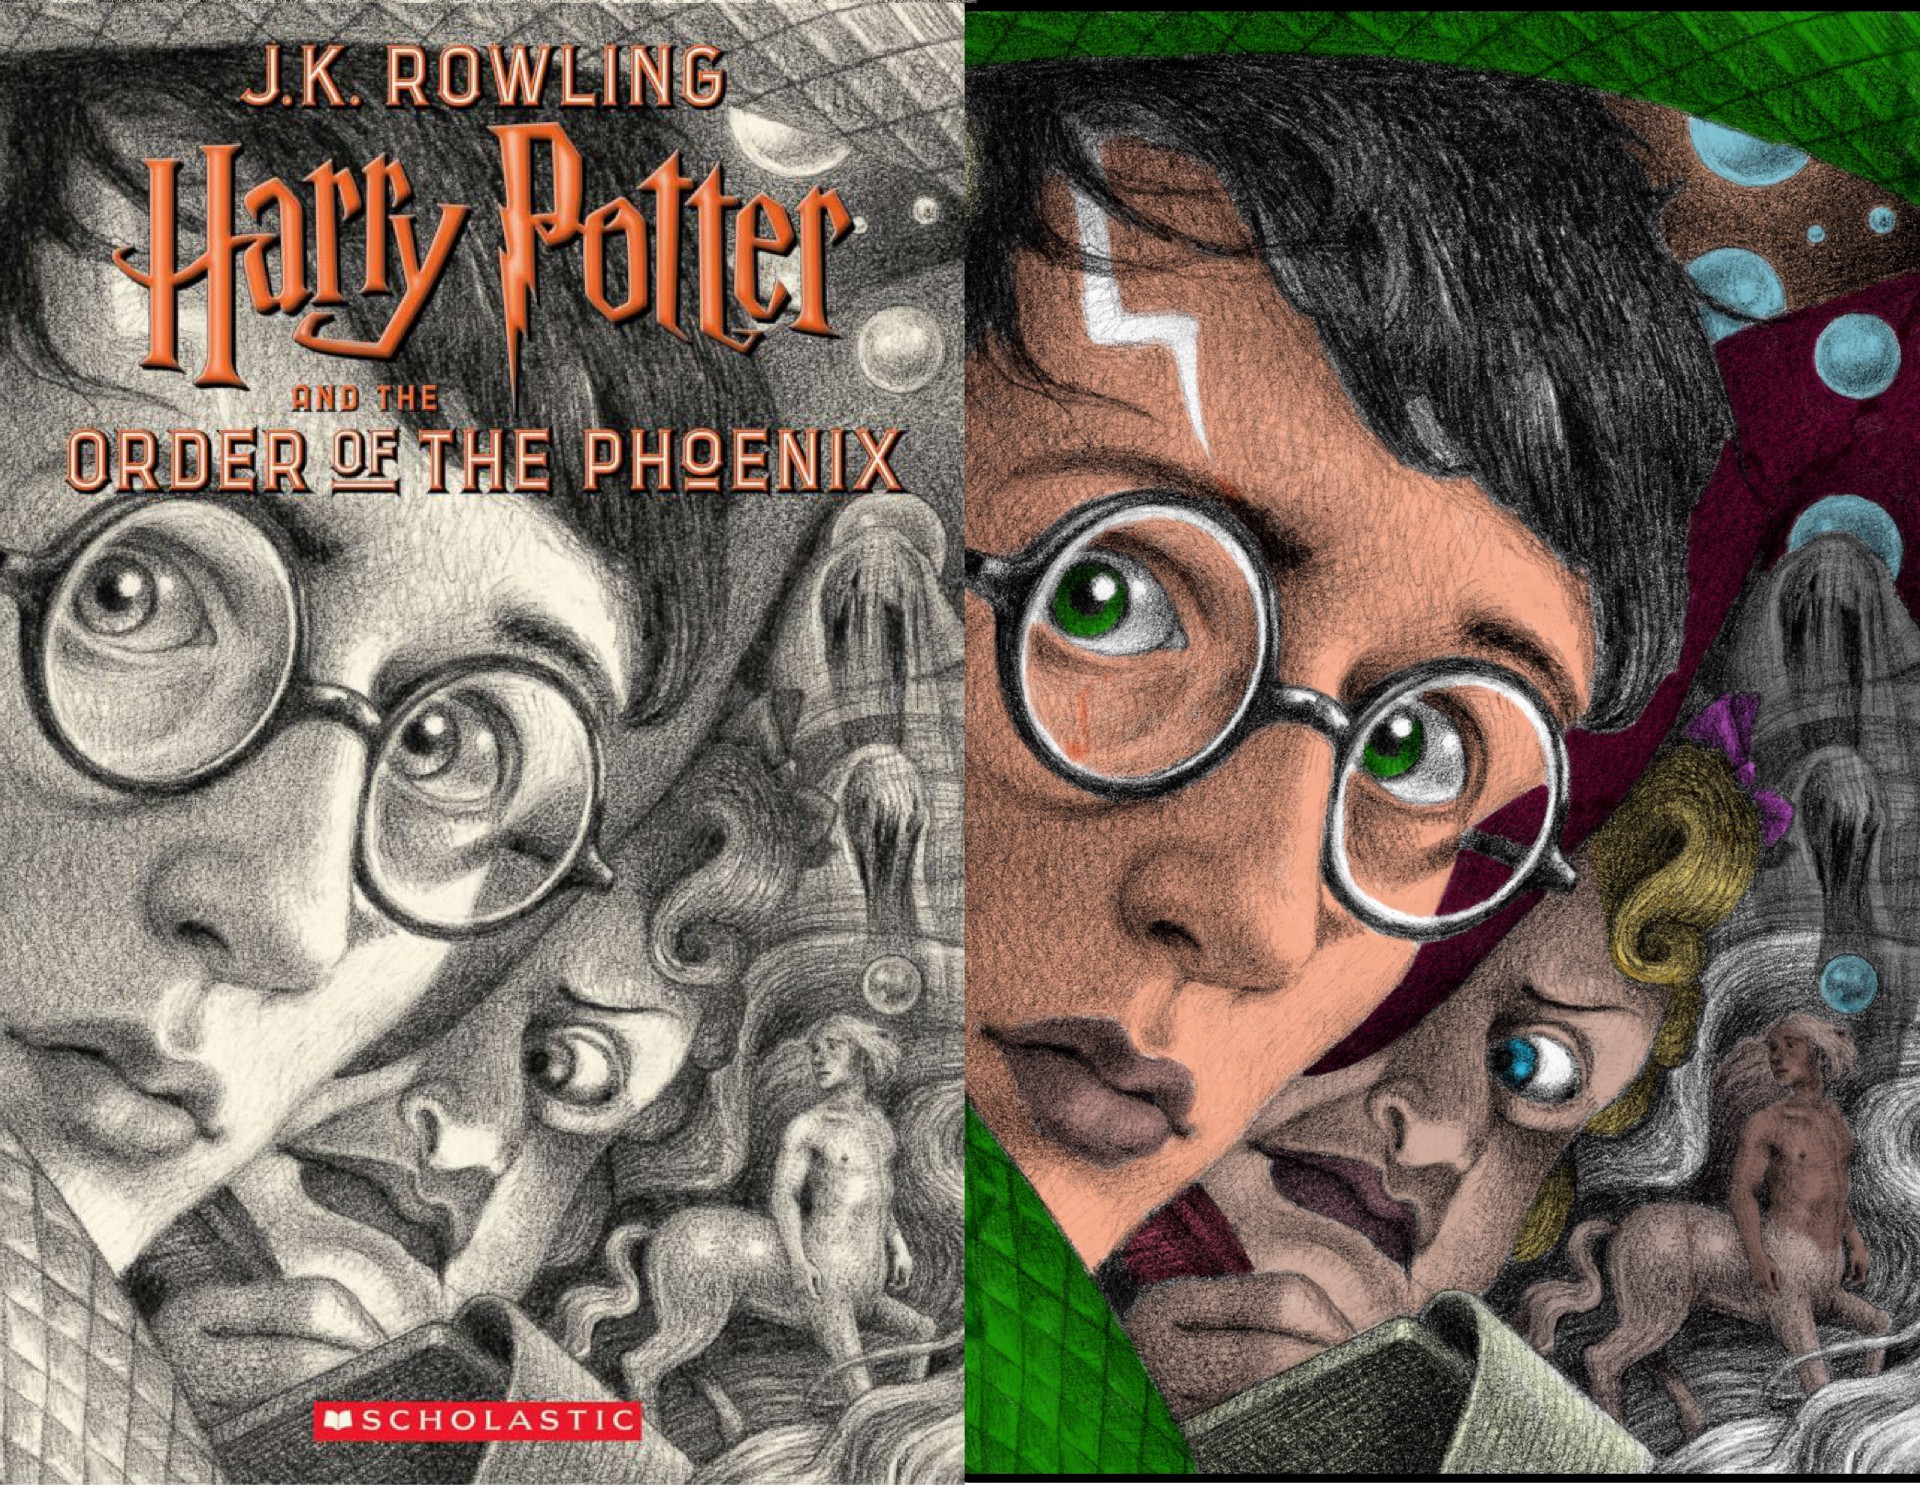 After All This Time Harry Potter Turns 20 And Brian Selznicks New Artwork Beautifully Celebrates